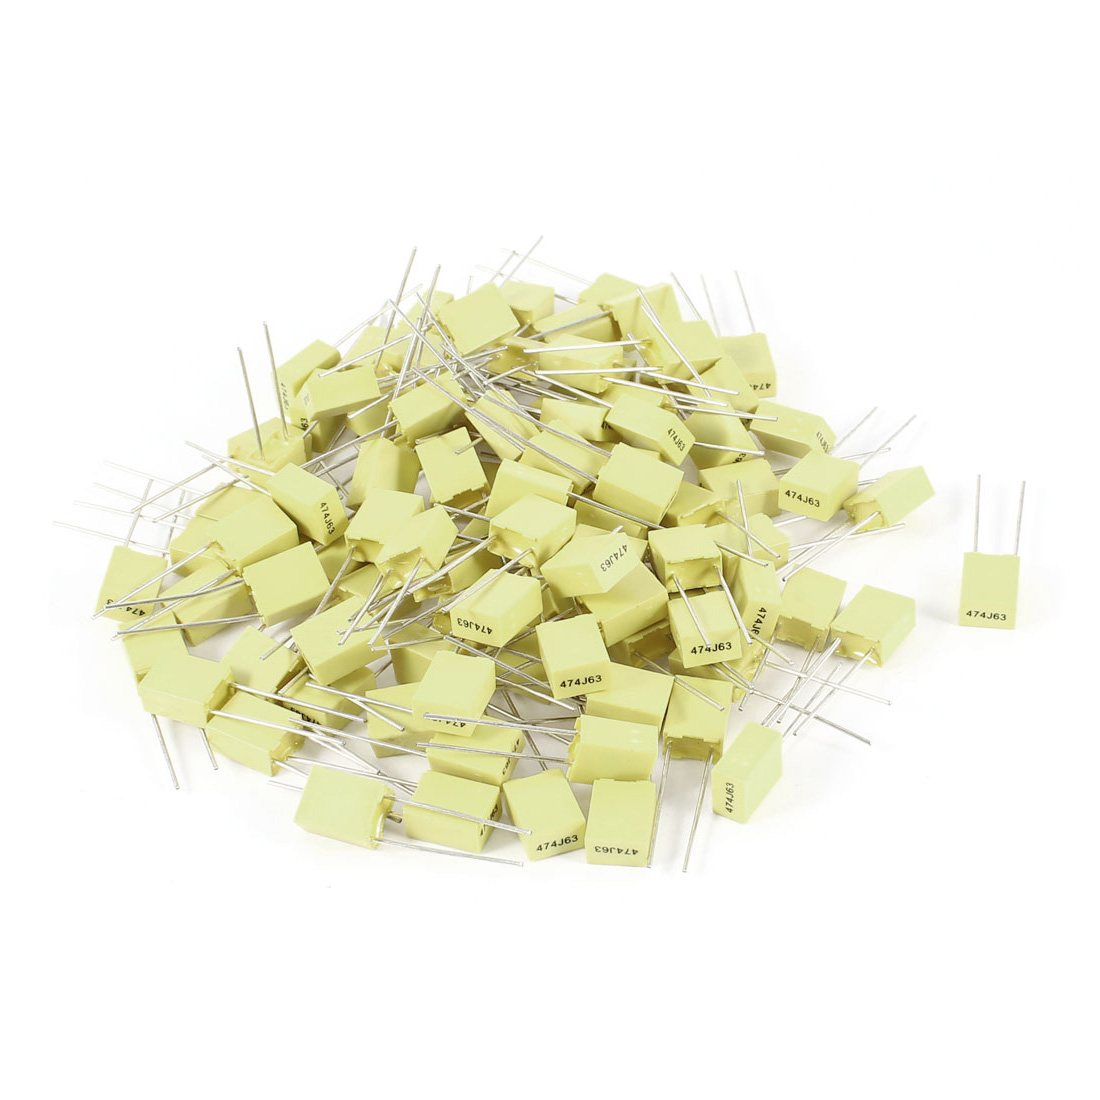 100 Pcs 63V 0.47uF 470NF Radial Lead Box Type Film Correction Capacitors Yellow